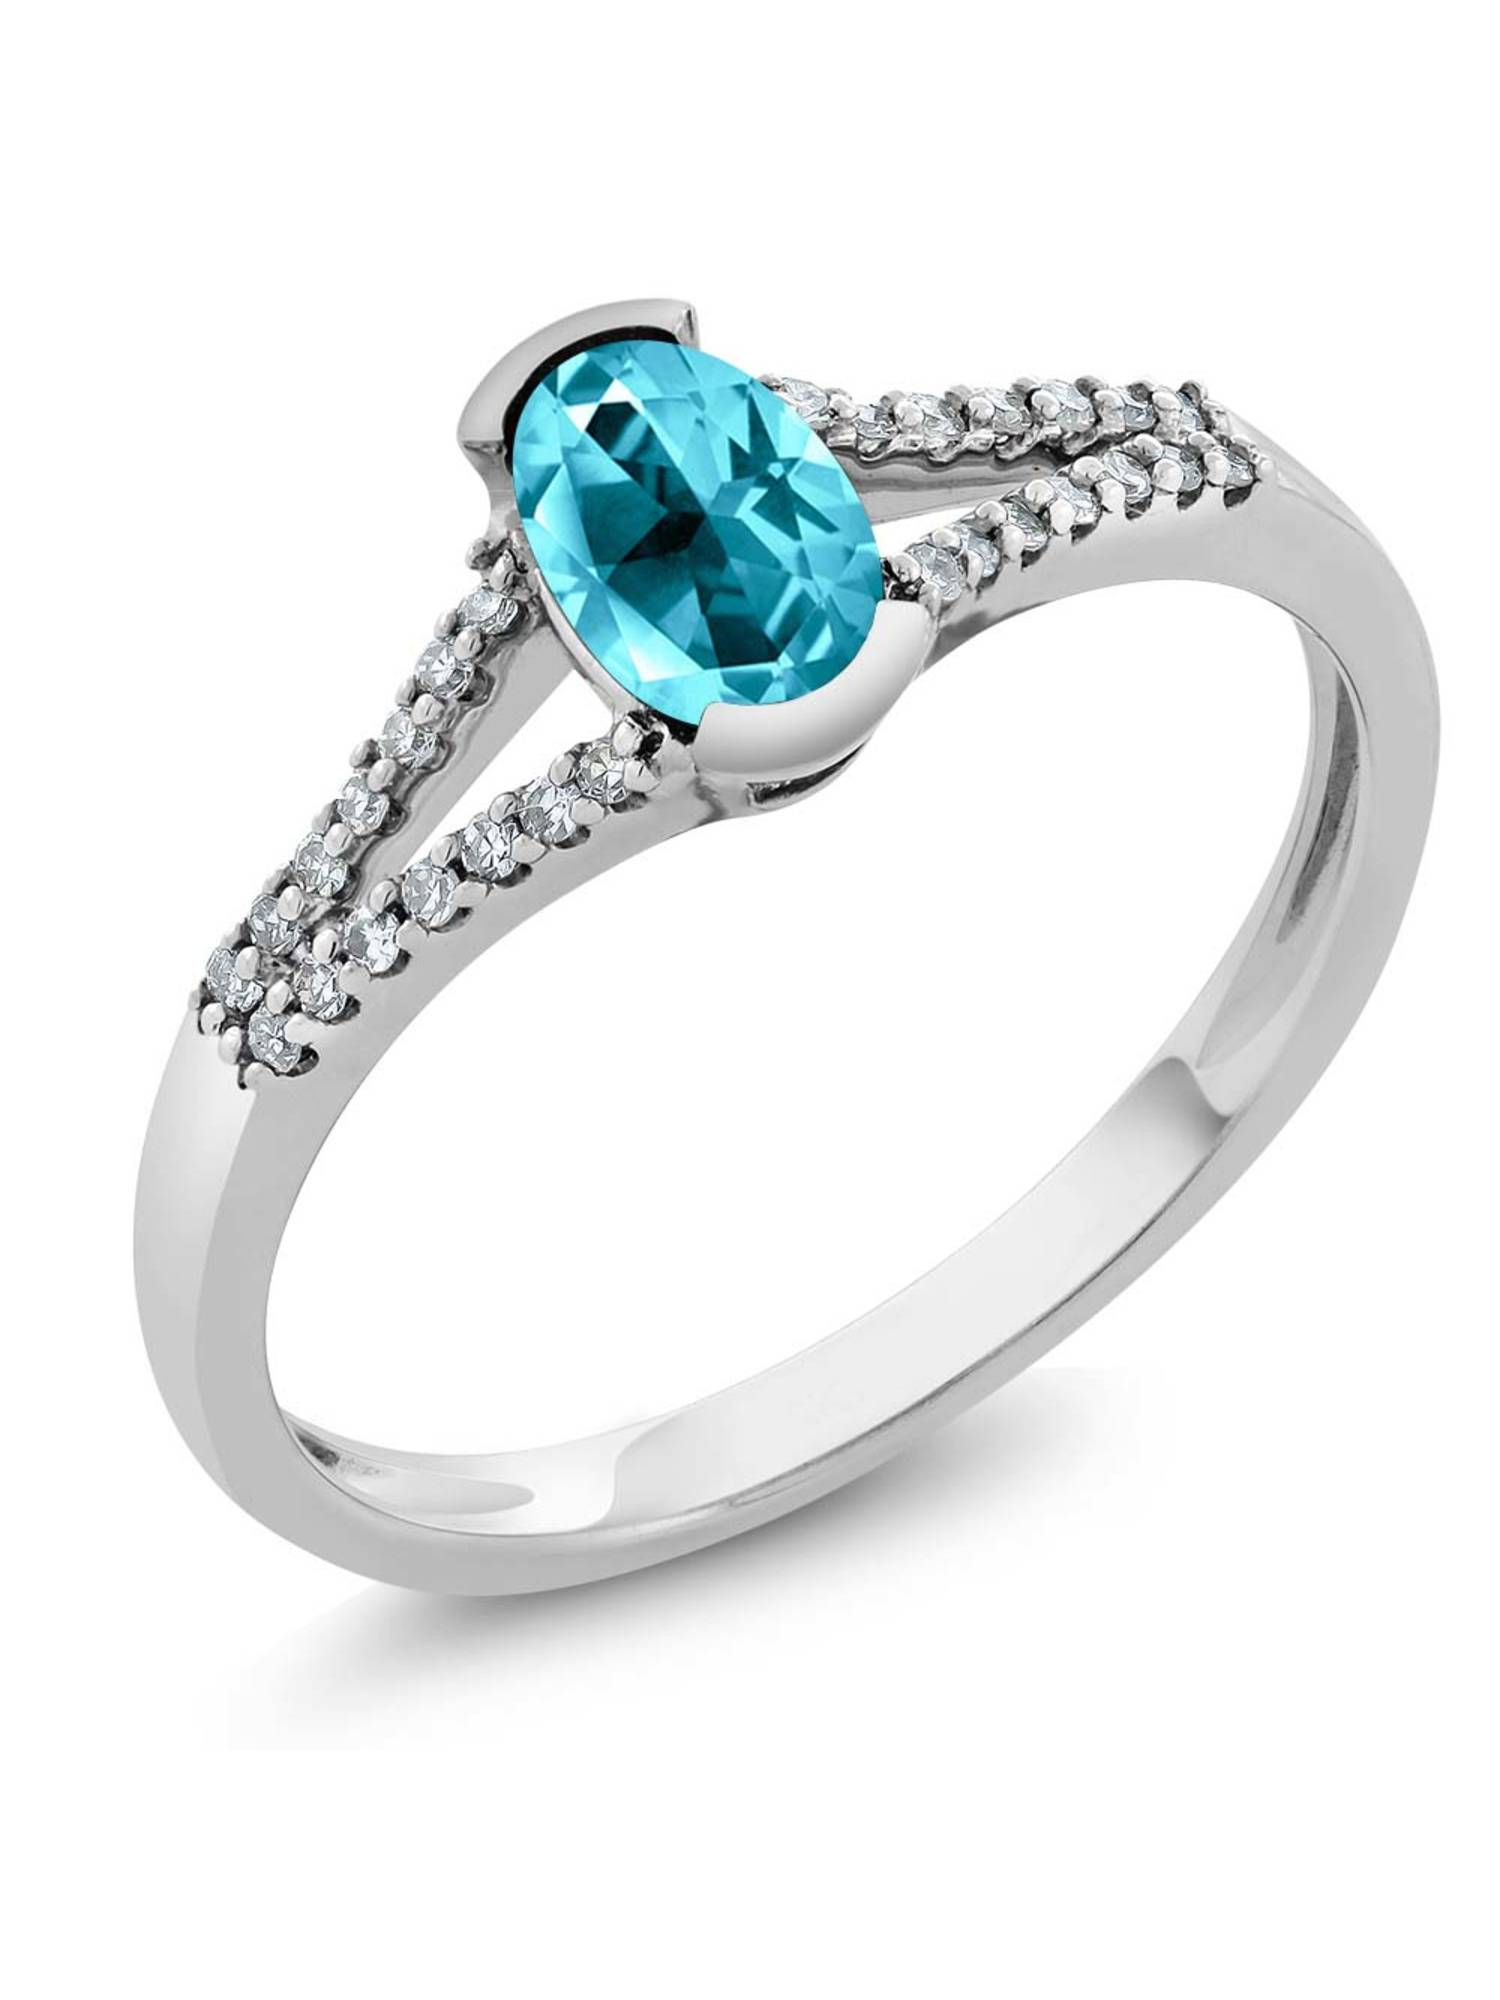 10K White Gold Diamond Ring Set with Oval Paraiba Topaz from Swarovski by